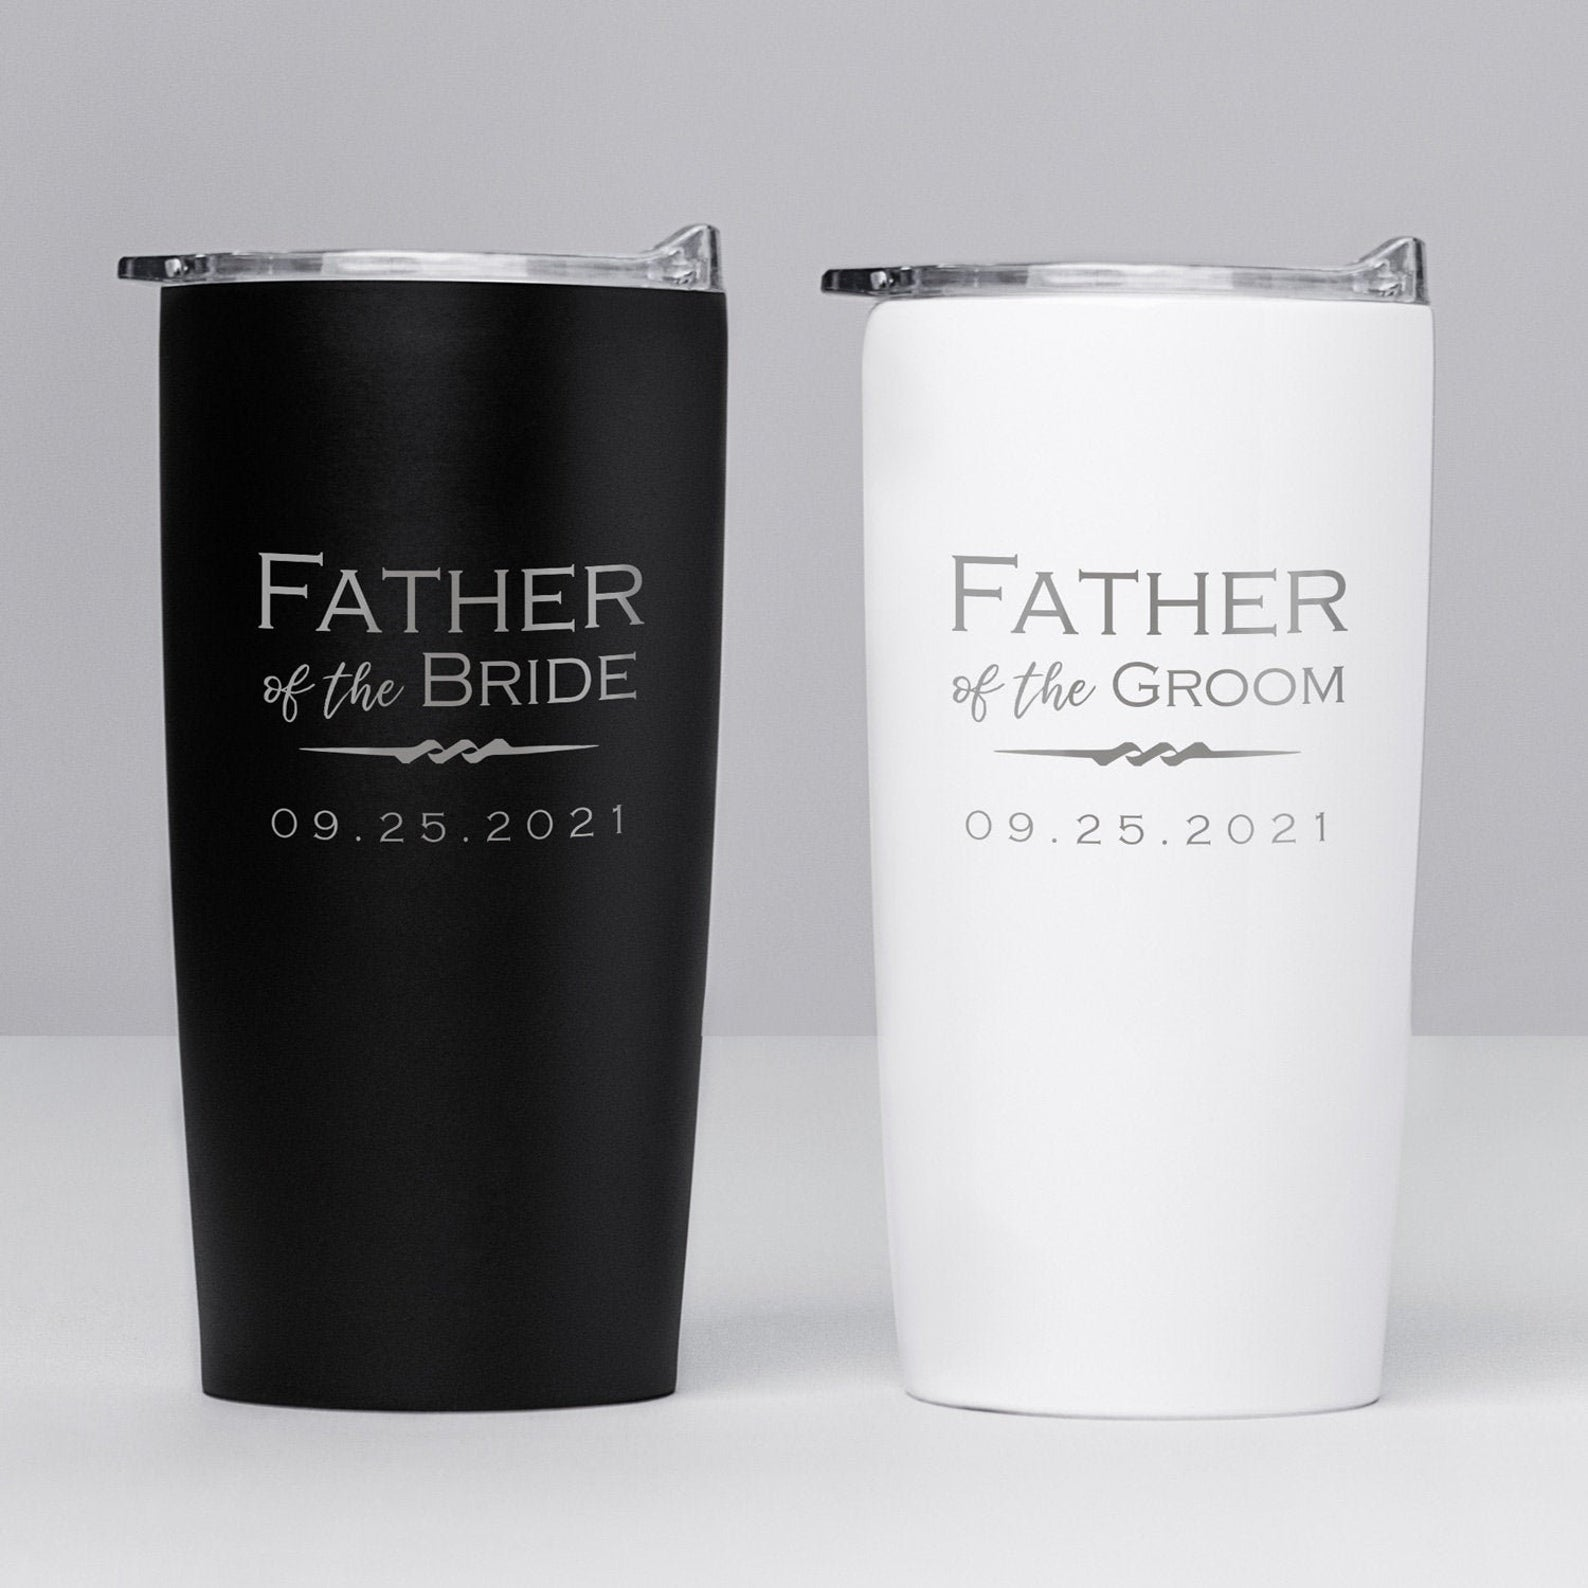 father-of-the-bride-gifts-stainless-tumbler